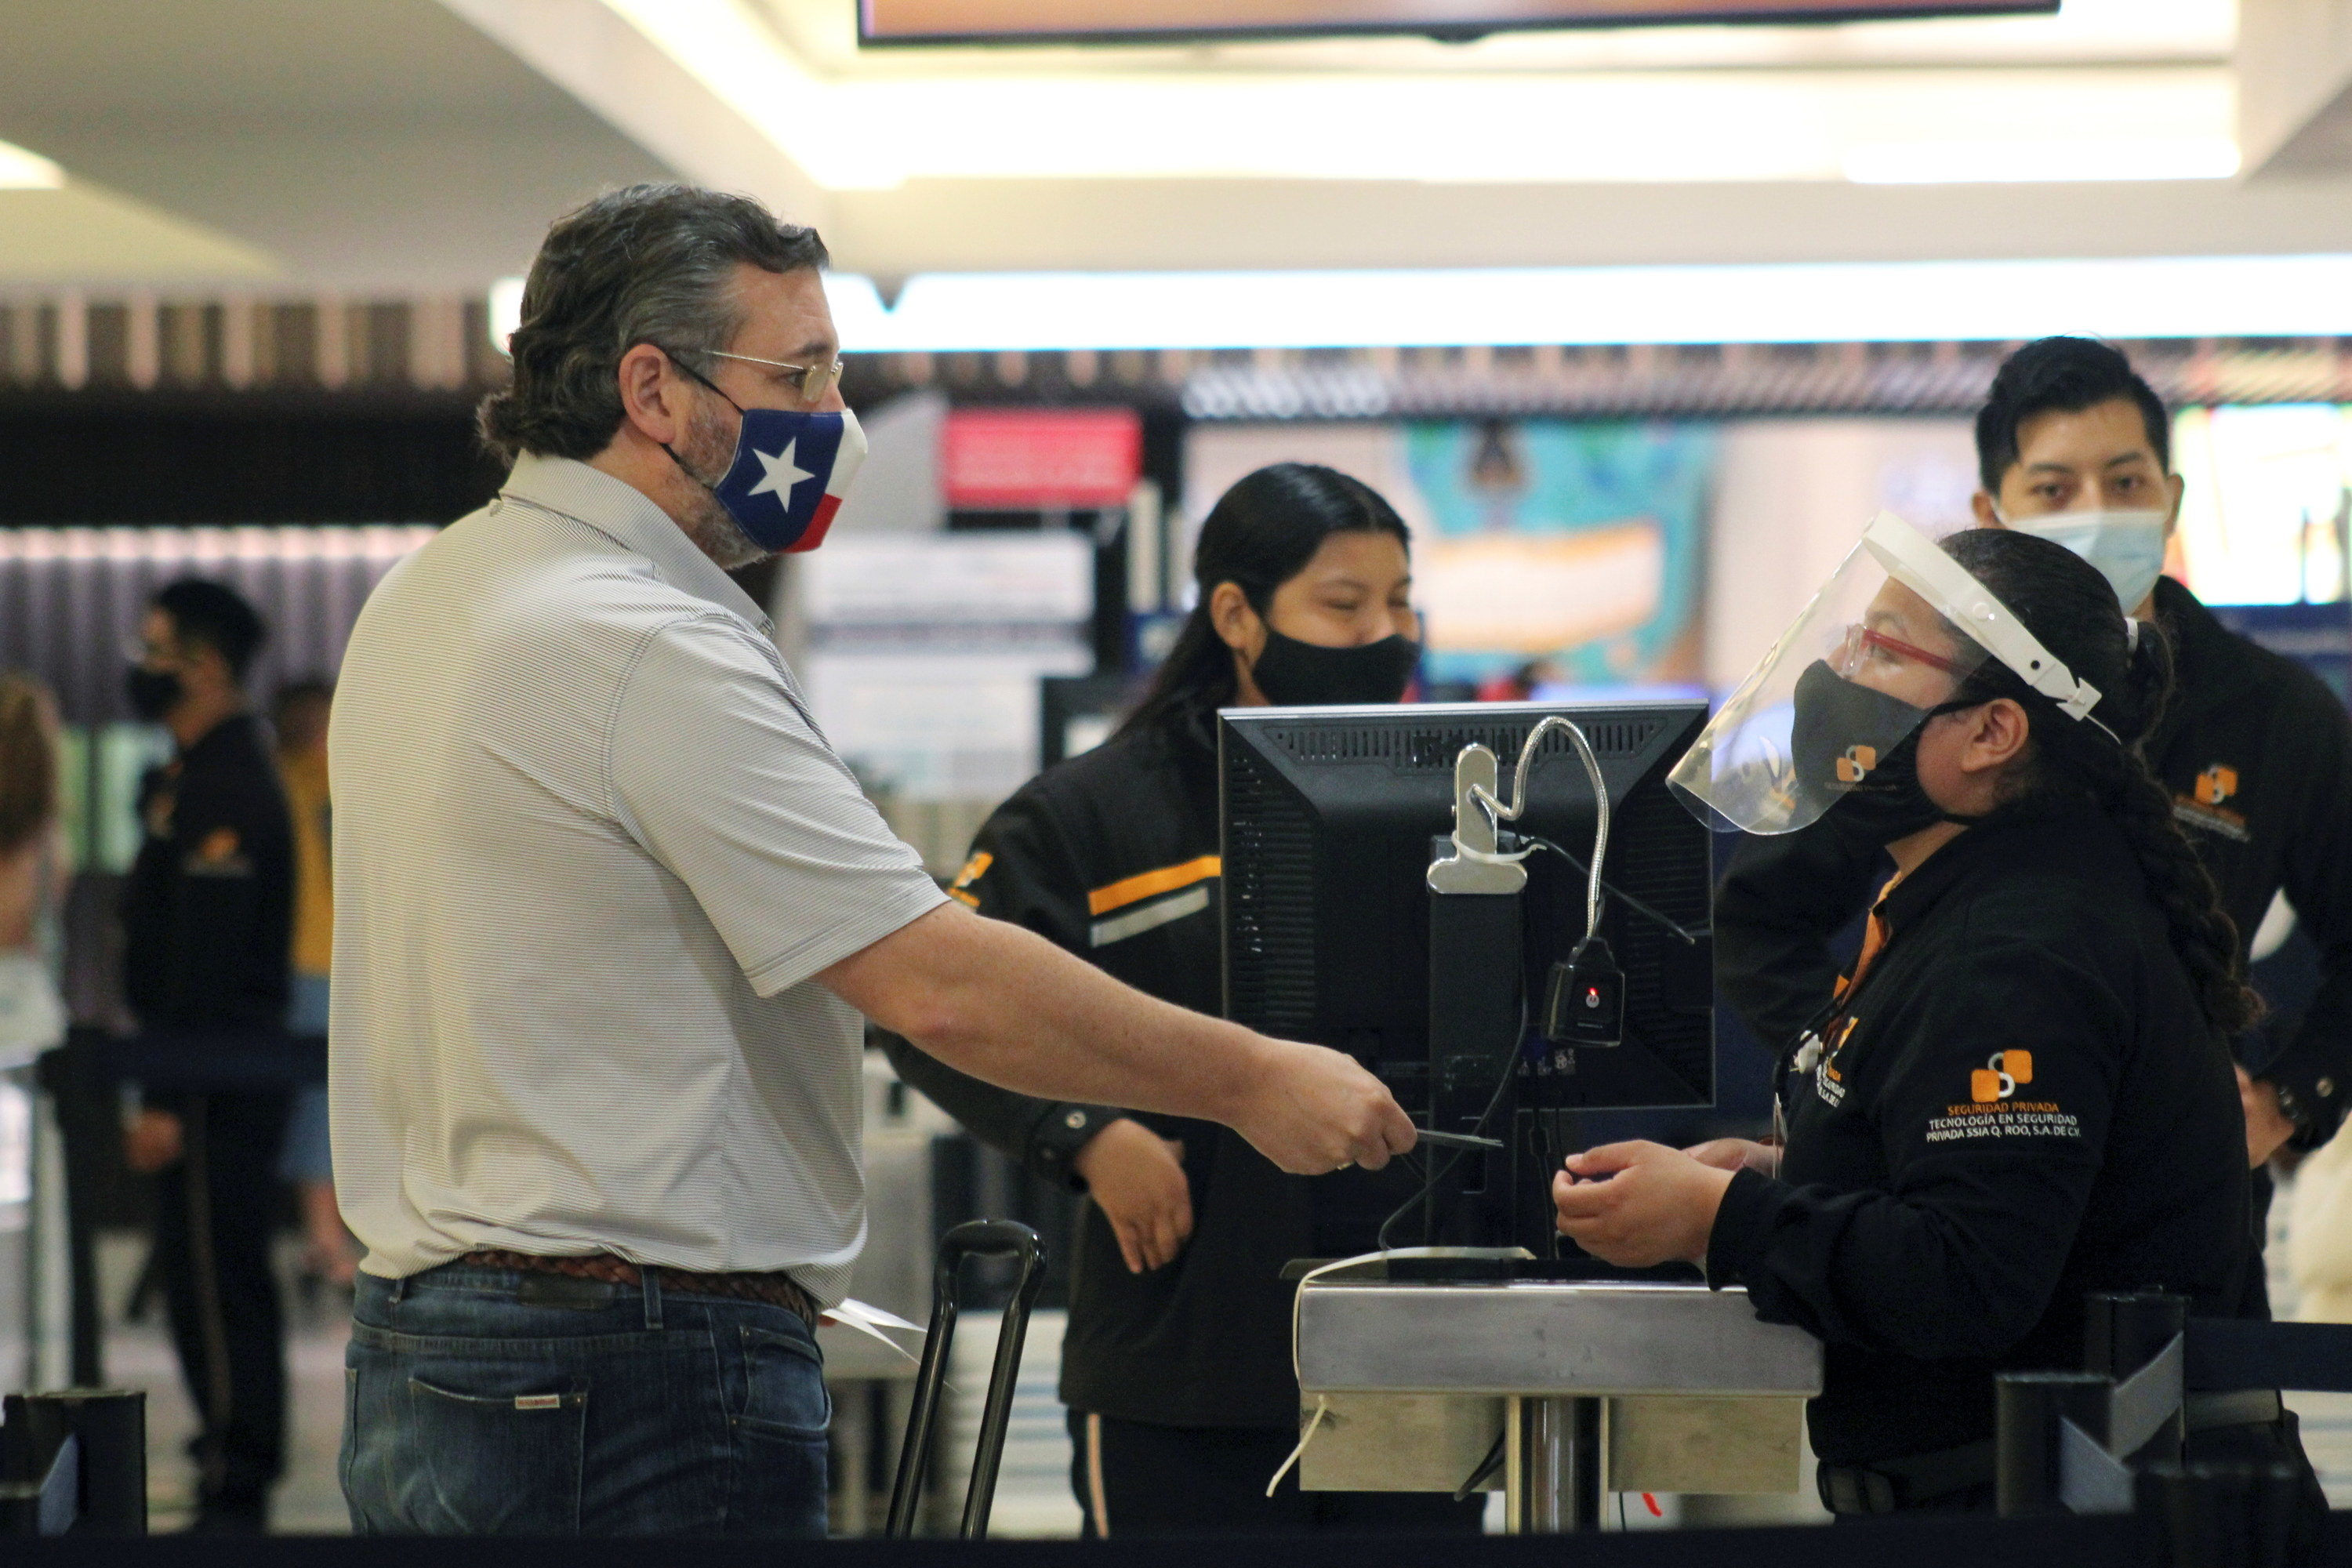 Ted Cruz talks to airport security guards wearing face coverings